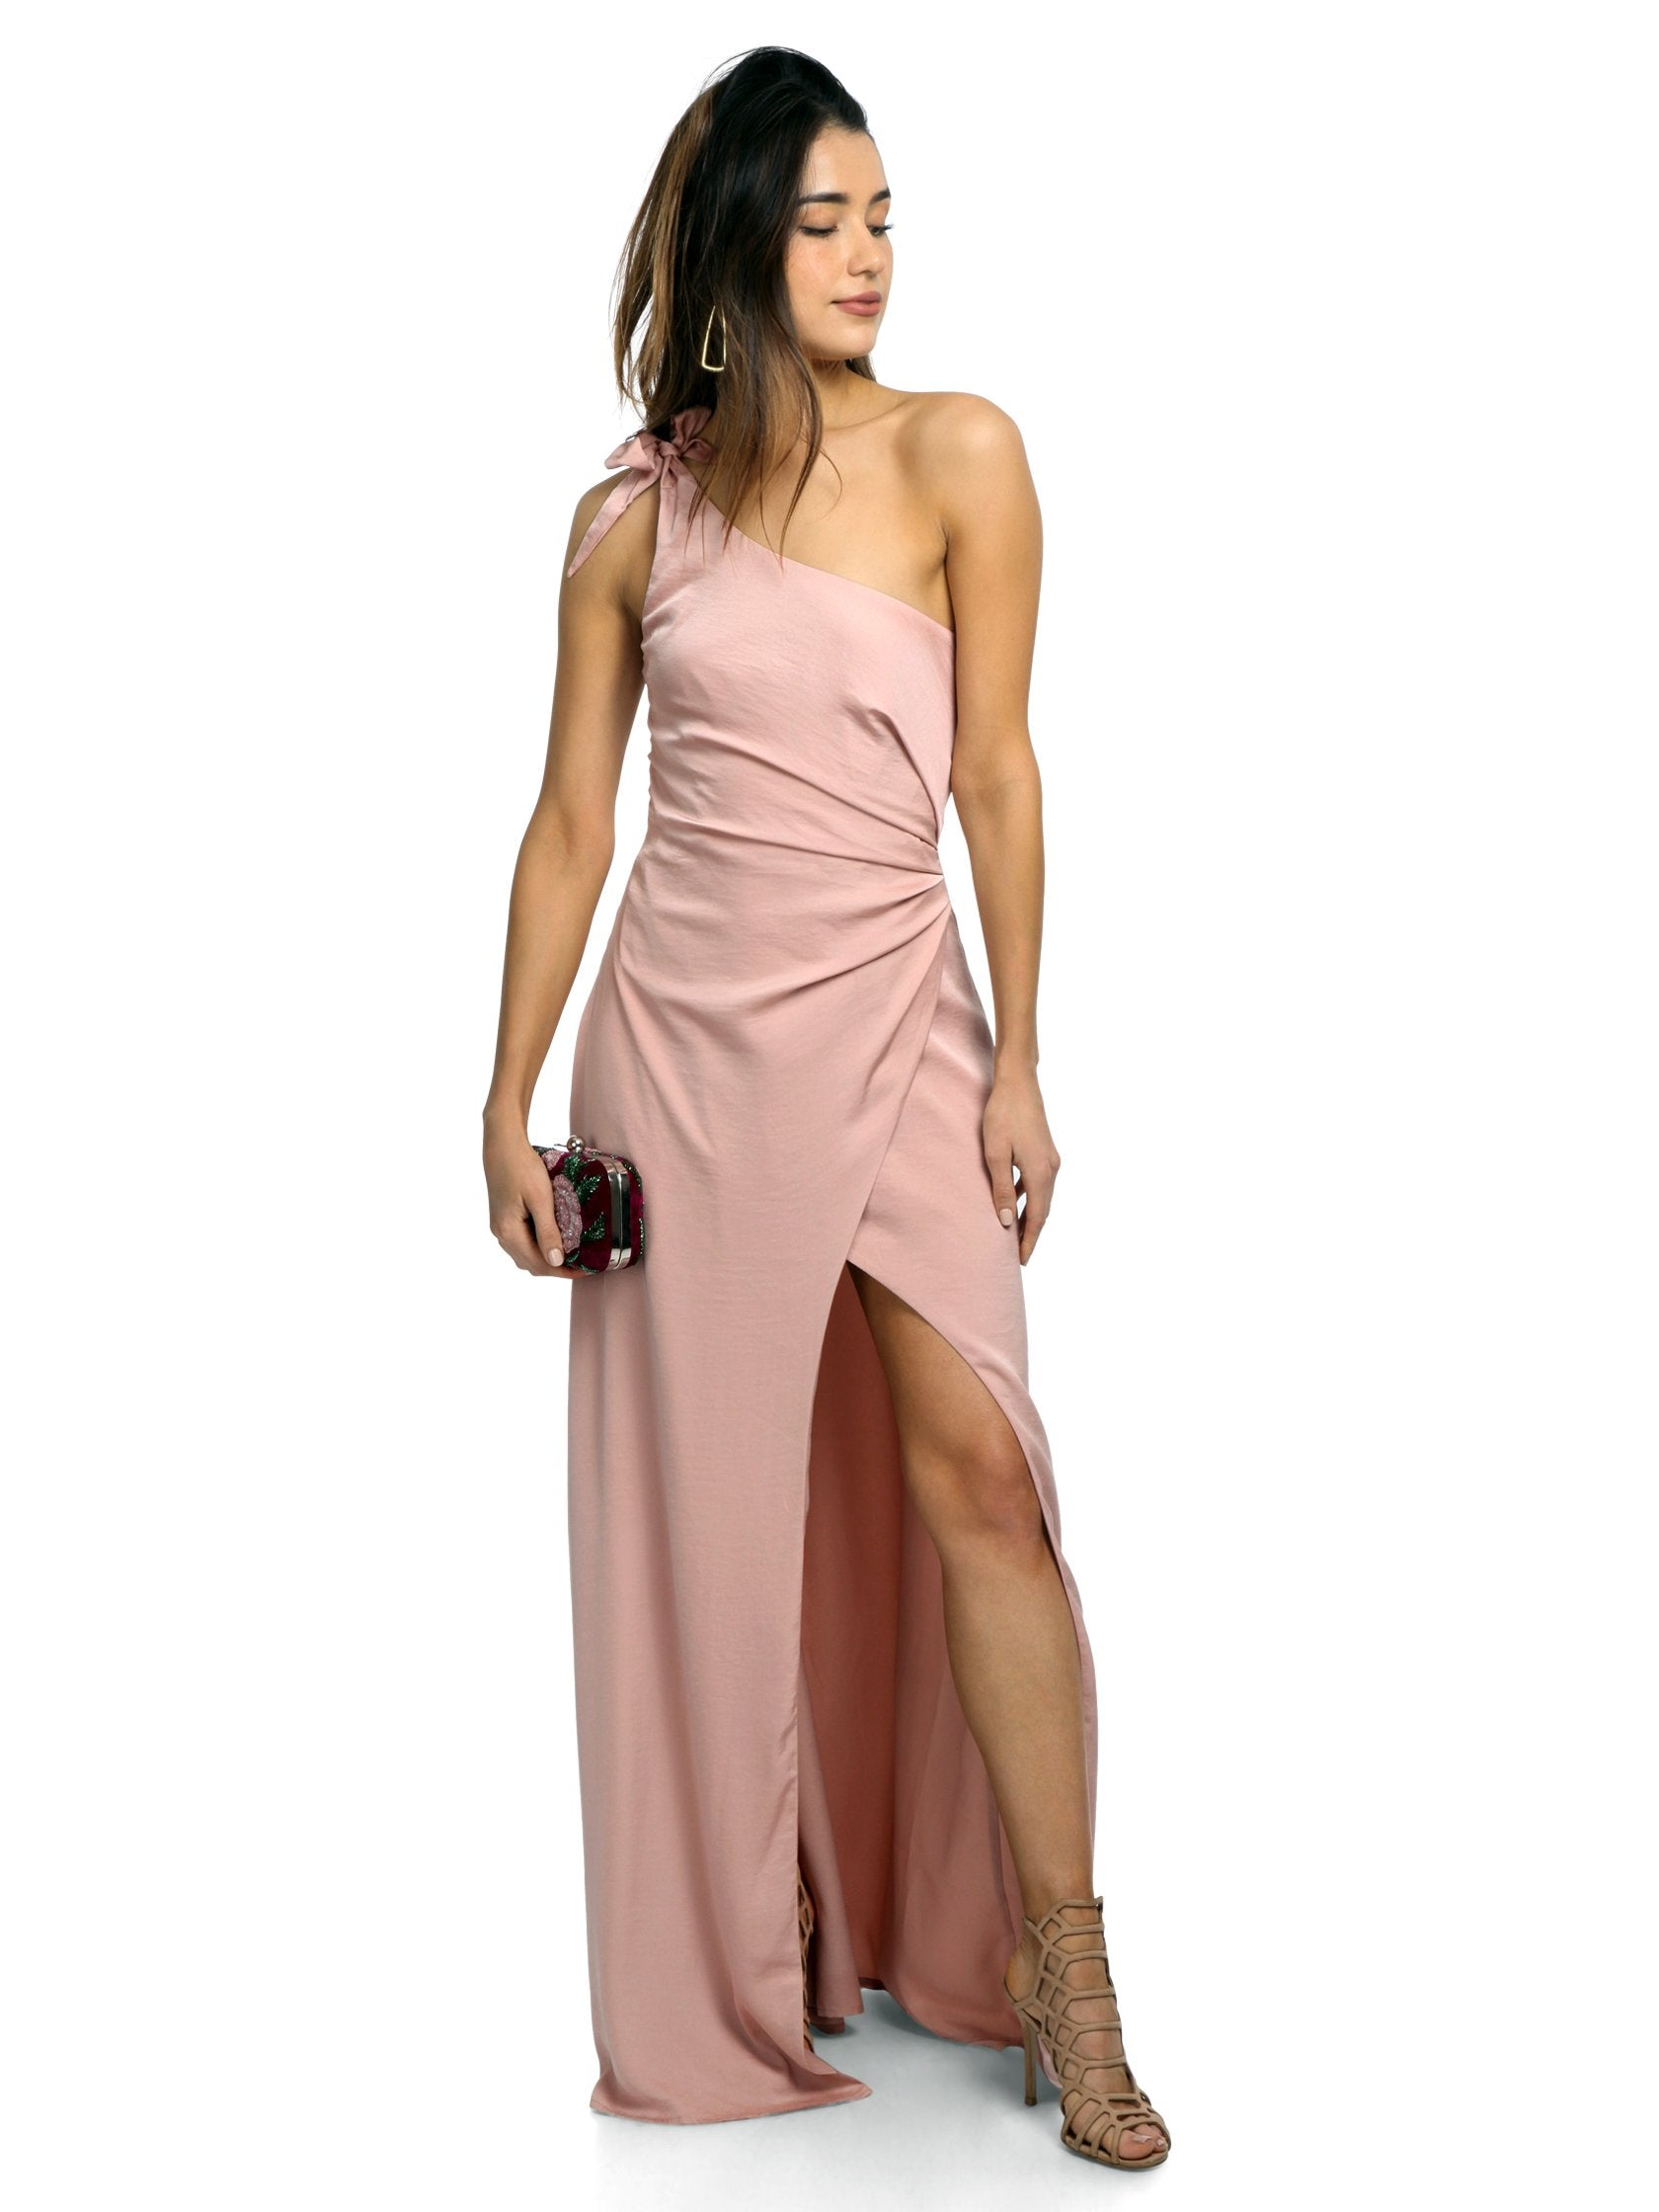 Girl outfit in a dress rental from STYLESTALKER called Jordana Maxi Dress